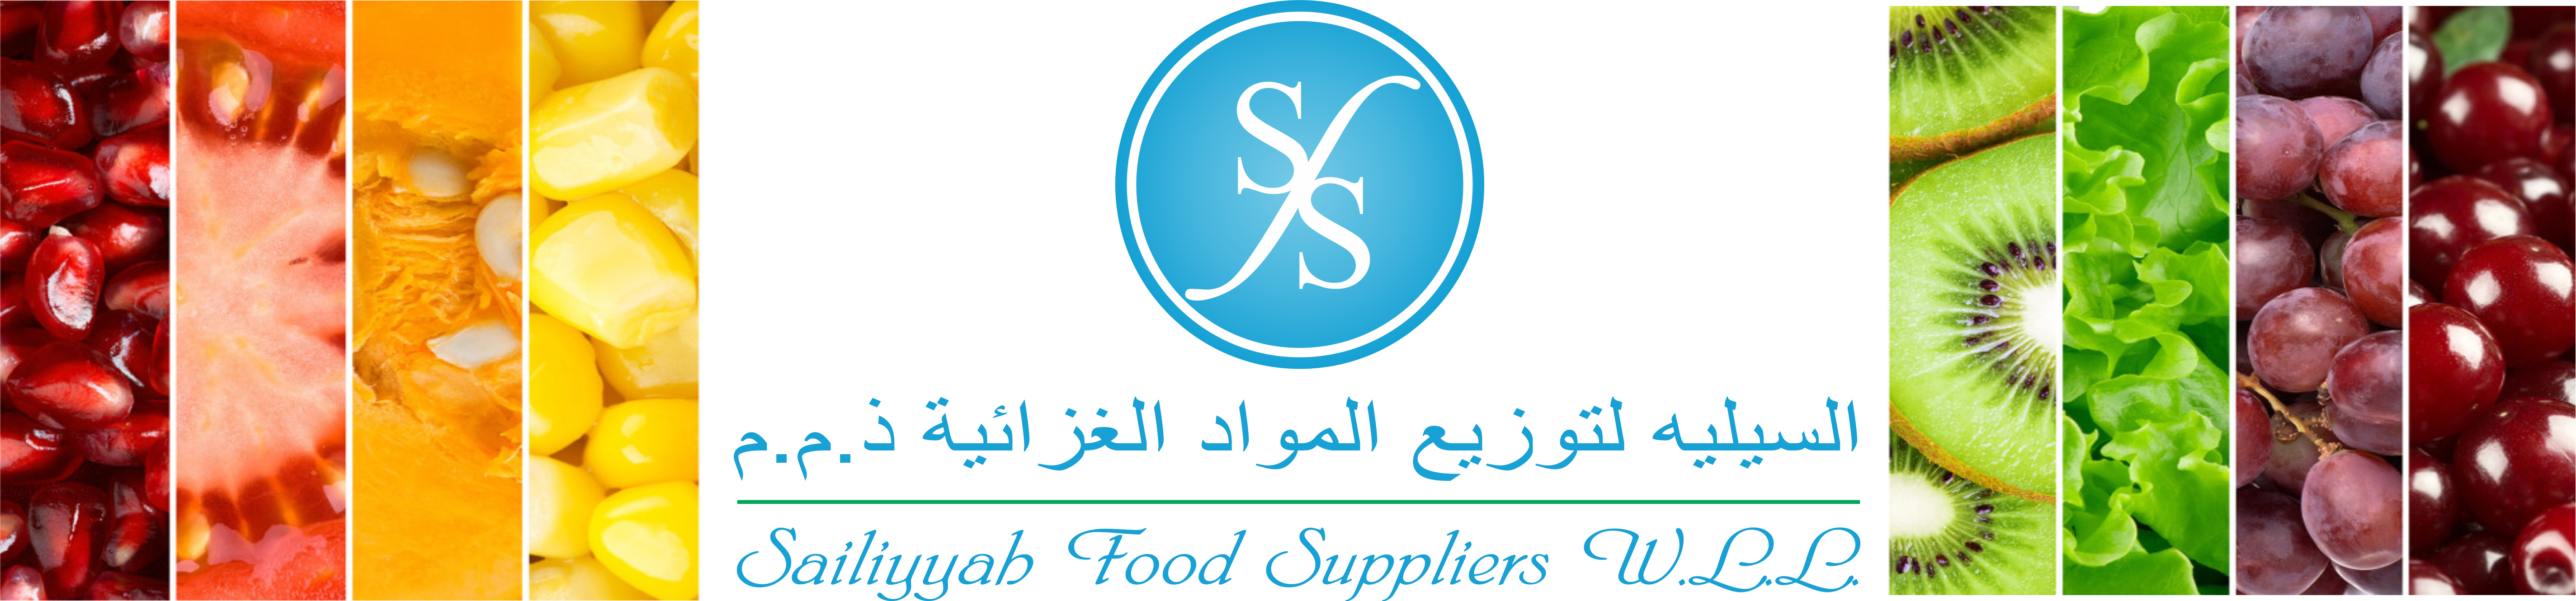 Sailiyyah Food Suppliers W L L